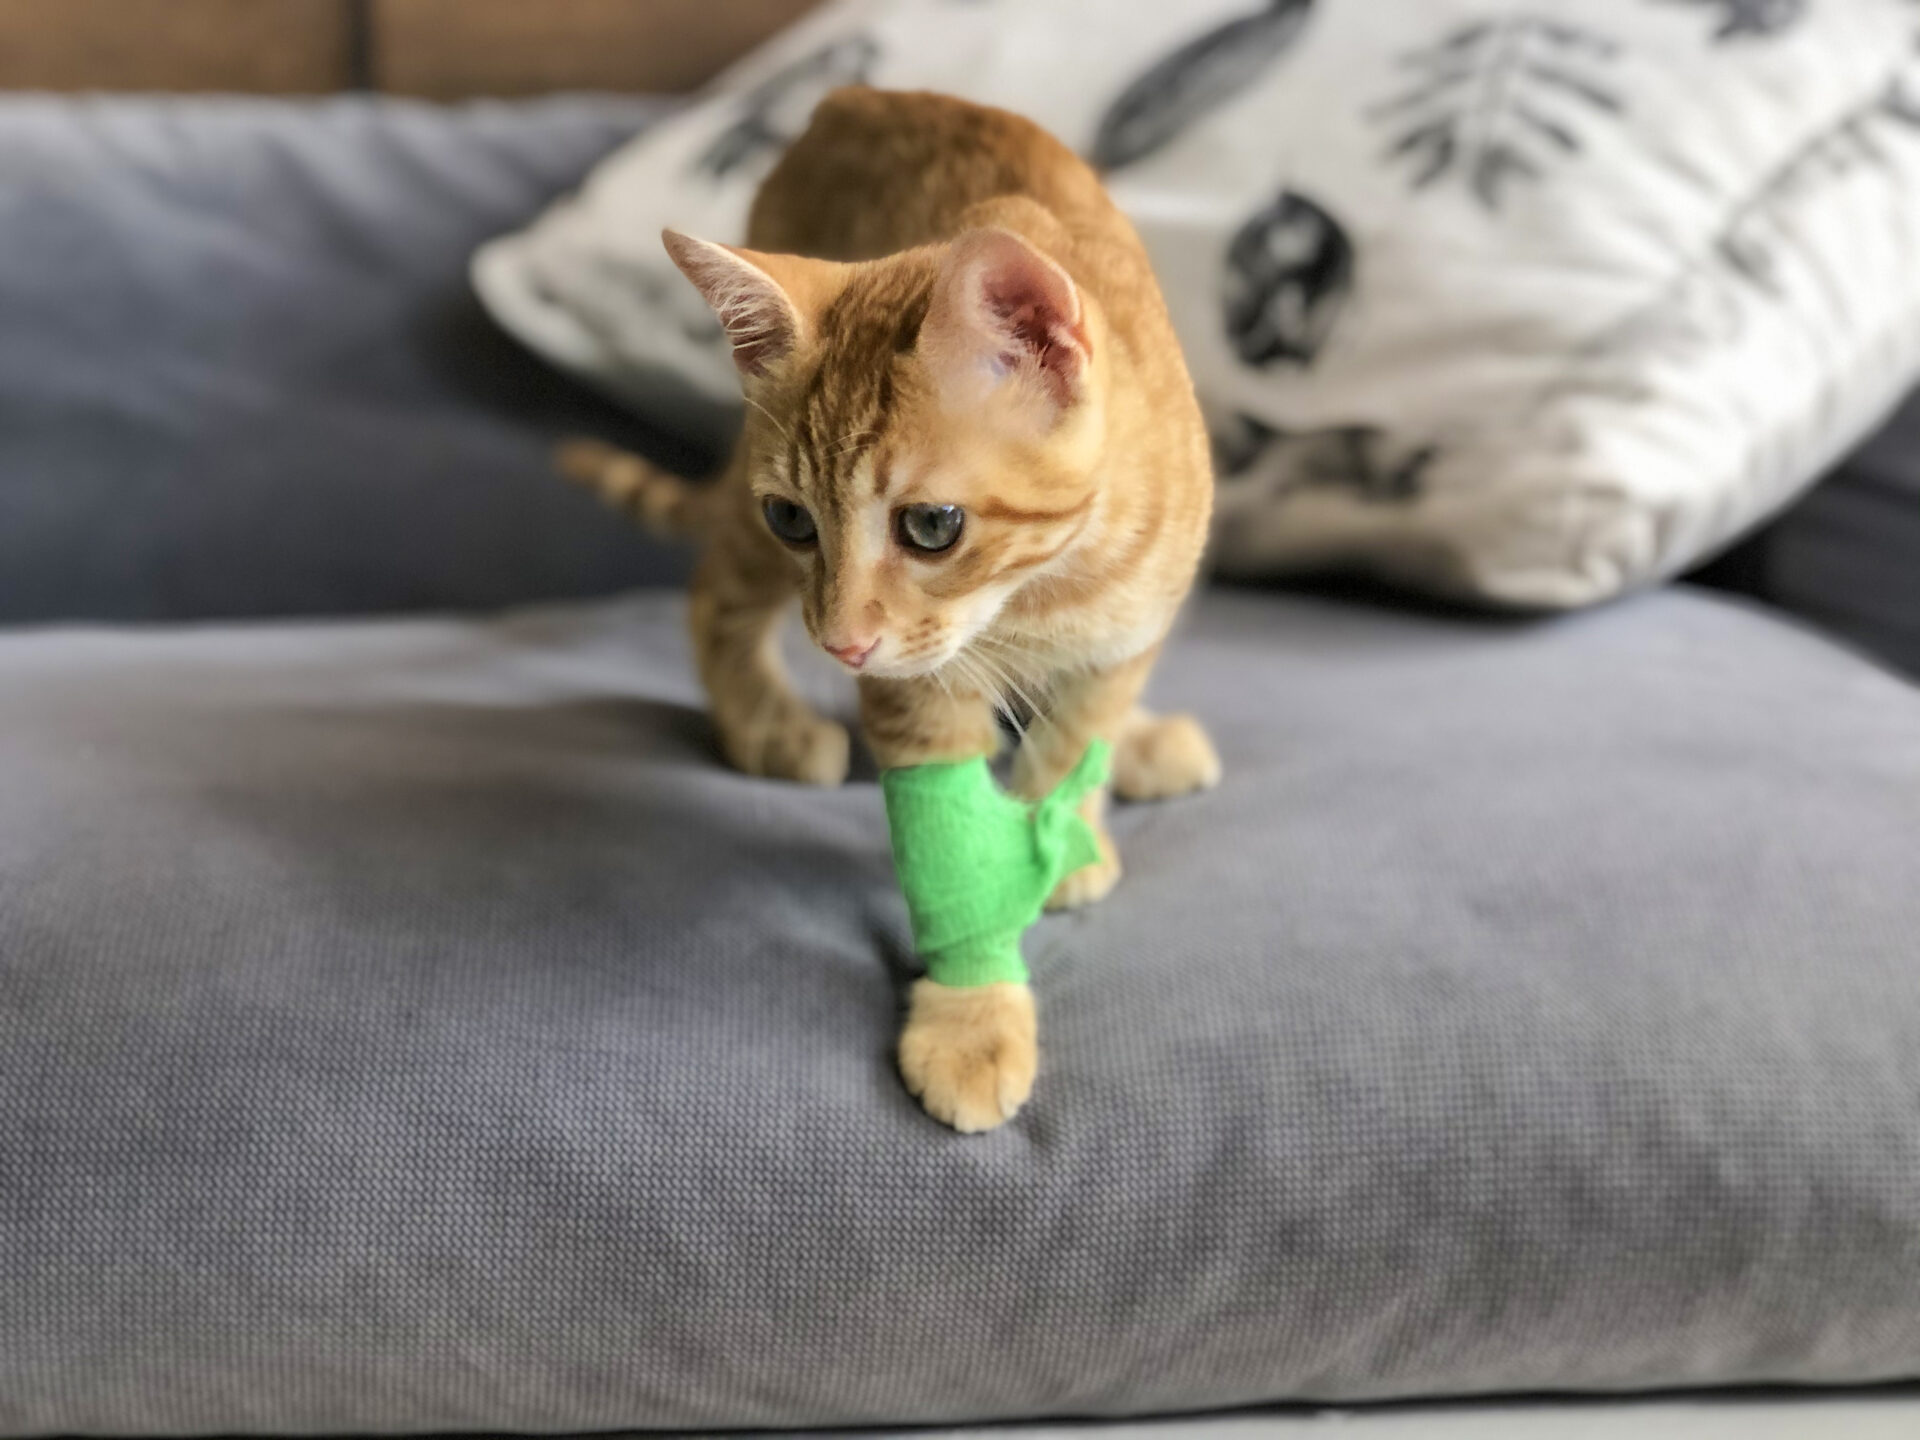 kitty with bandage on her arm showcasing pet first aid awareness month